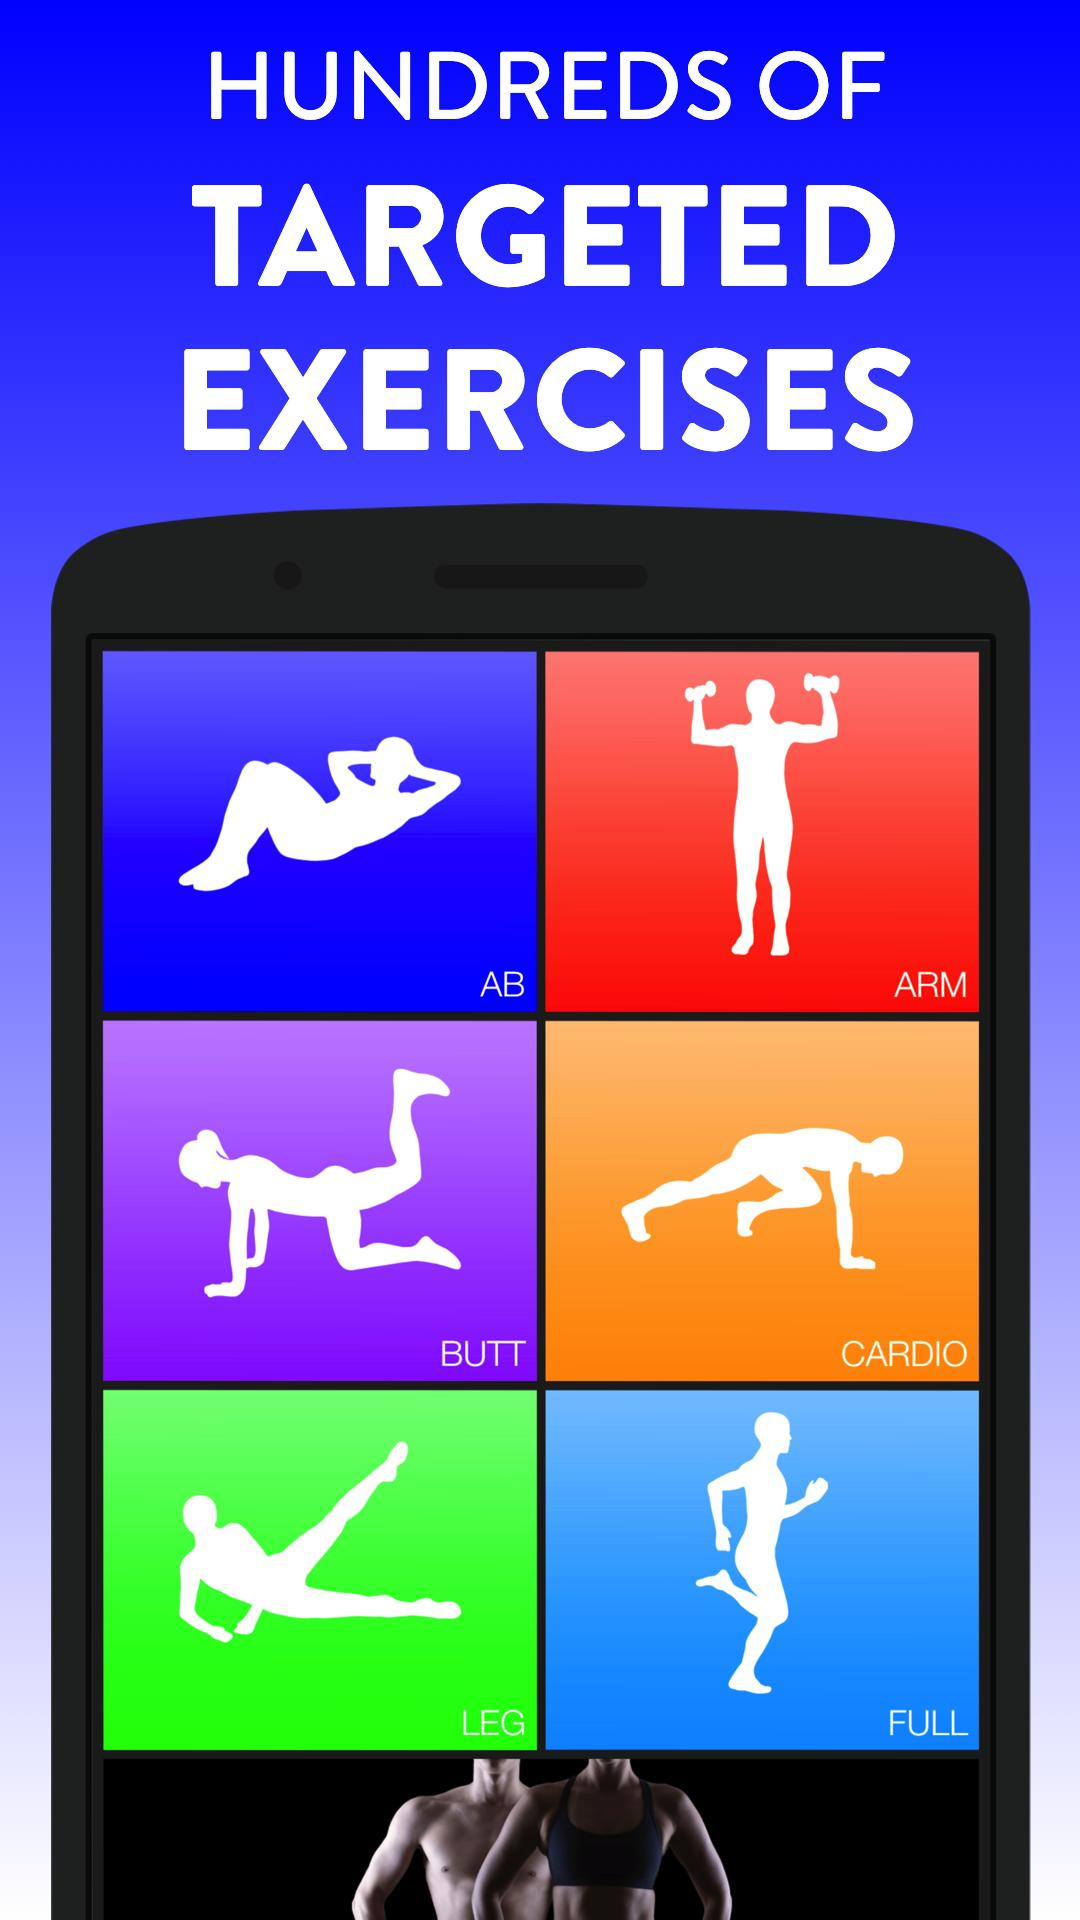 Daily Workouts - Exercise Fitness Workout Trainer 6.12 Screenshot 2